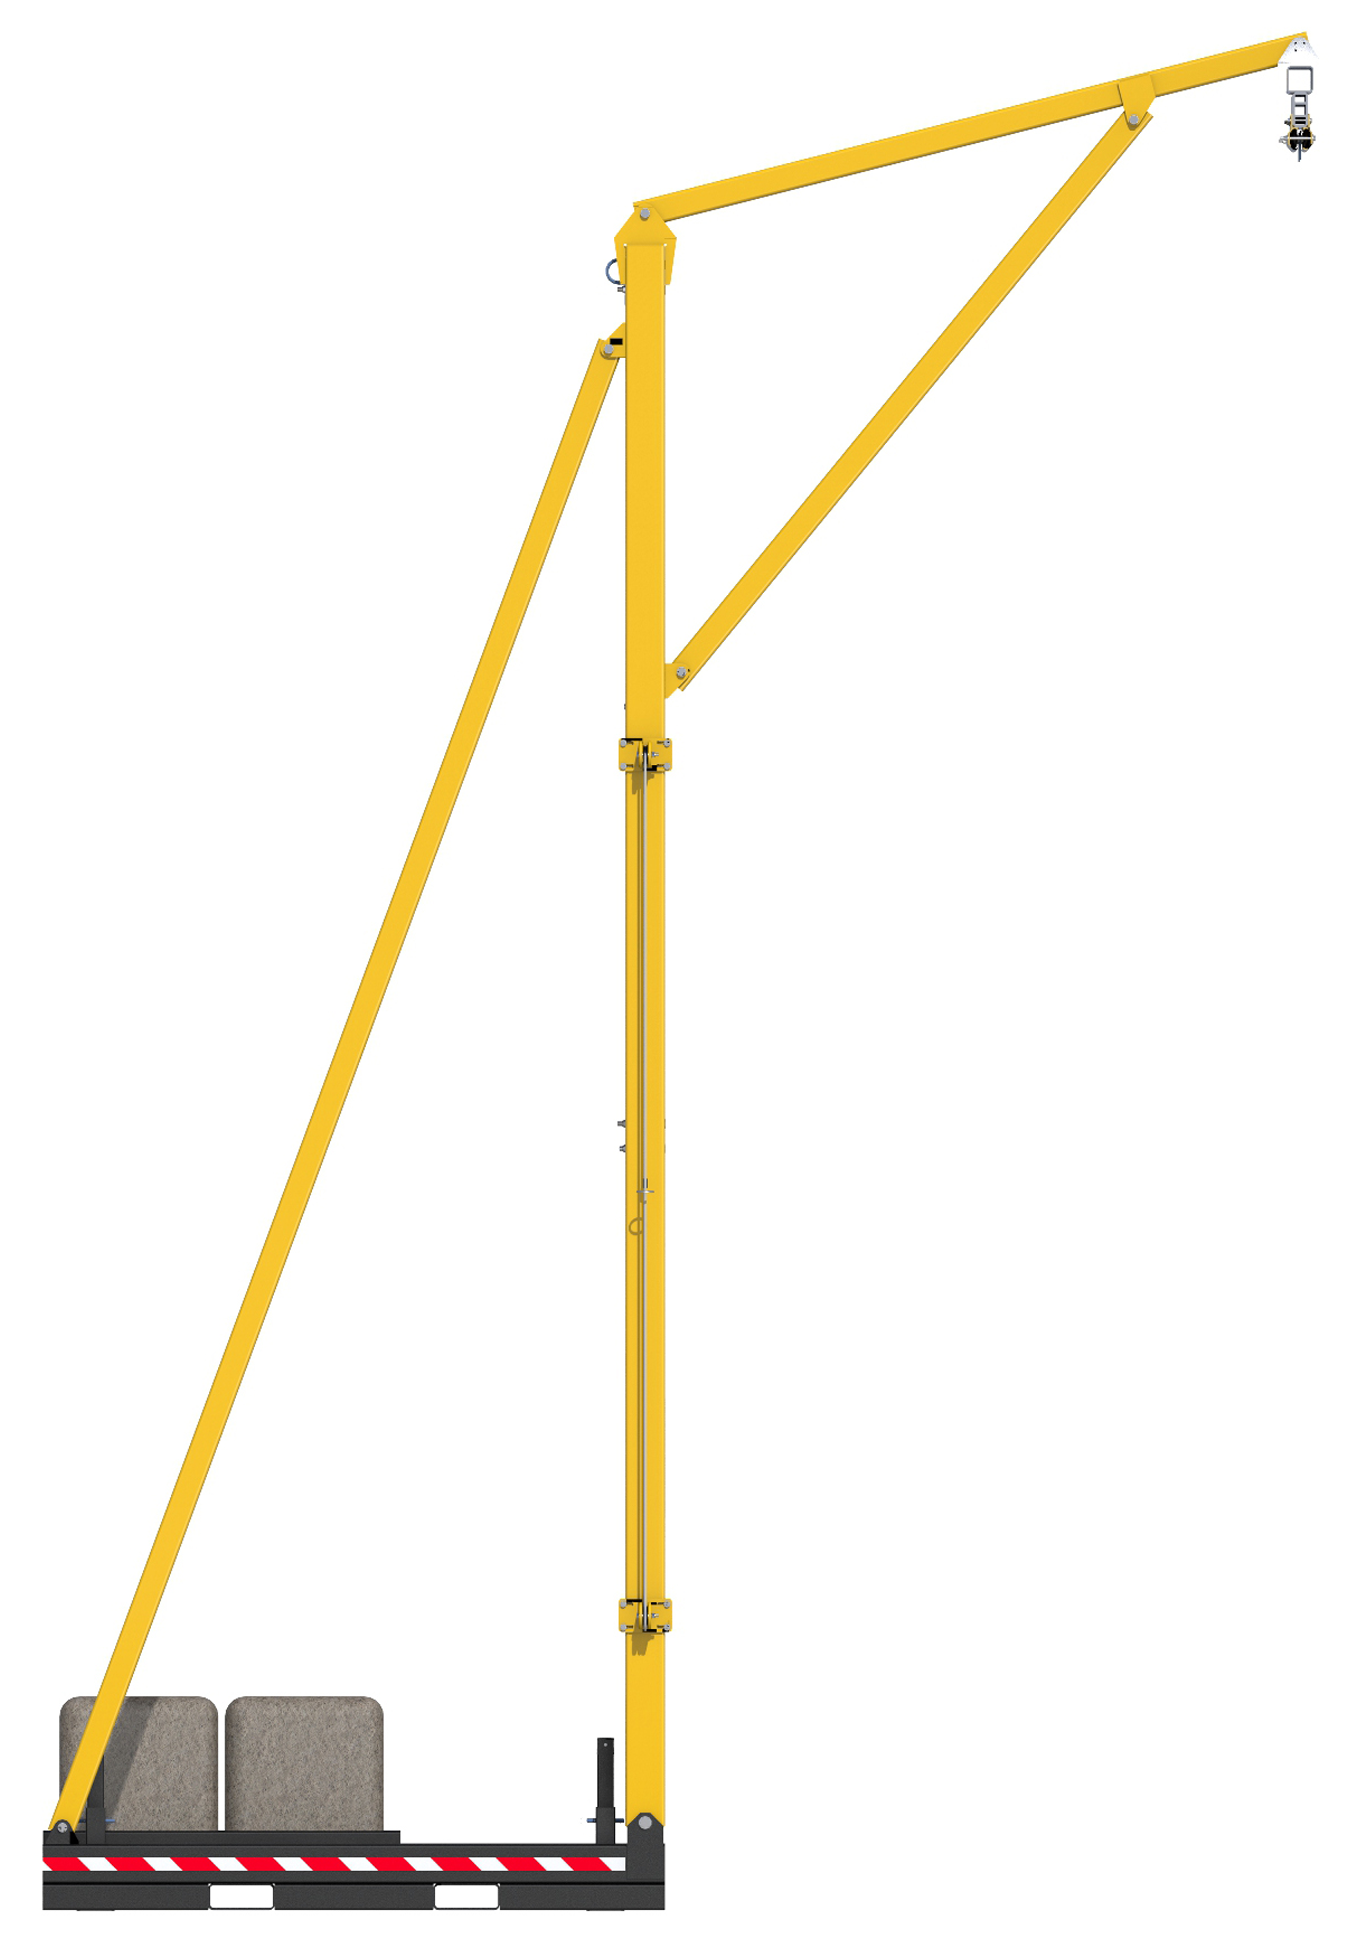 FlexiGuard Counterweighted Overhead 42 ft. Rail Fall Arrest System, 22 ft. Ht., Counterweights Included, Side View